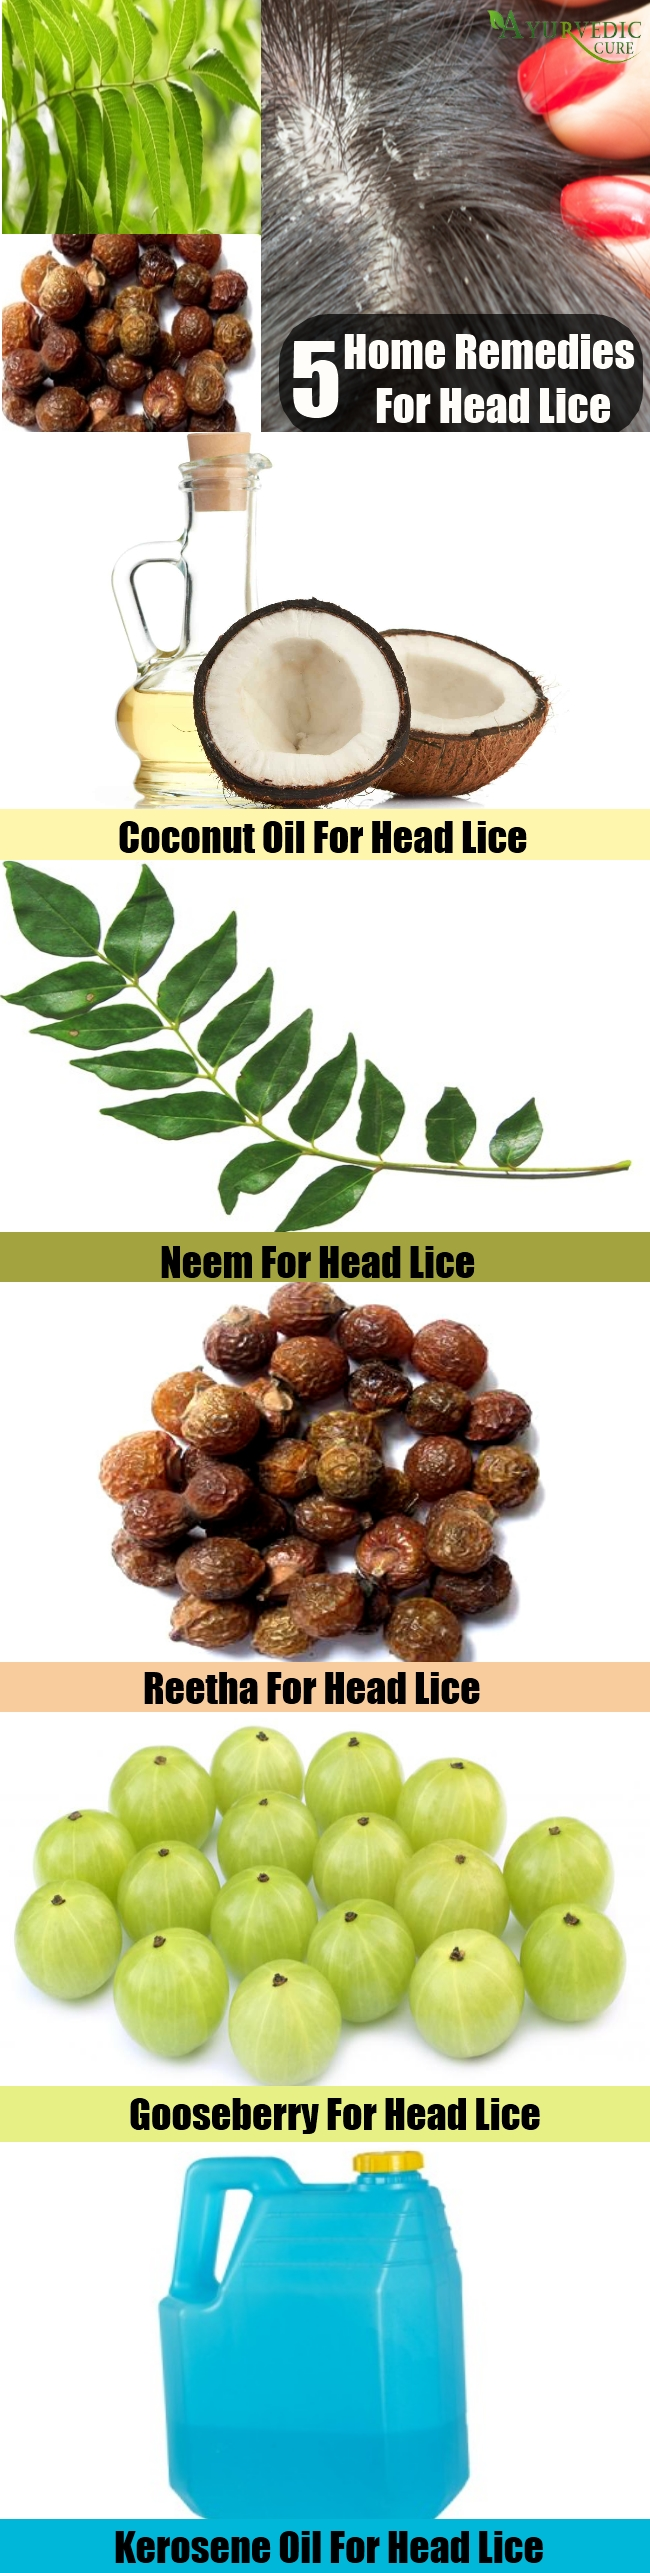 Excellent Home Remedies For Head Lice